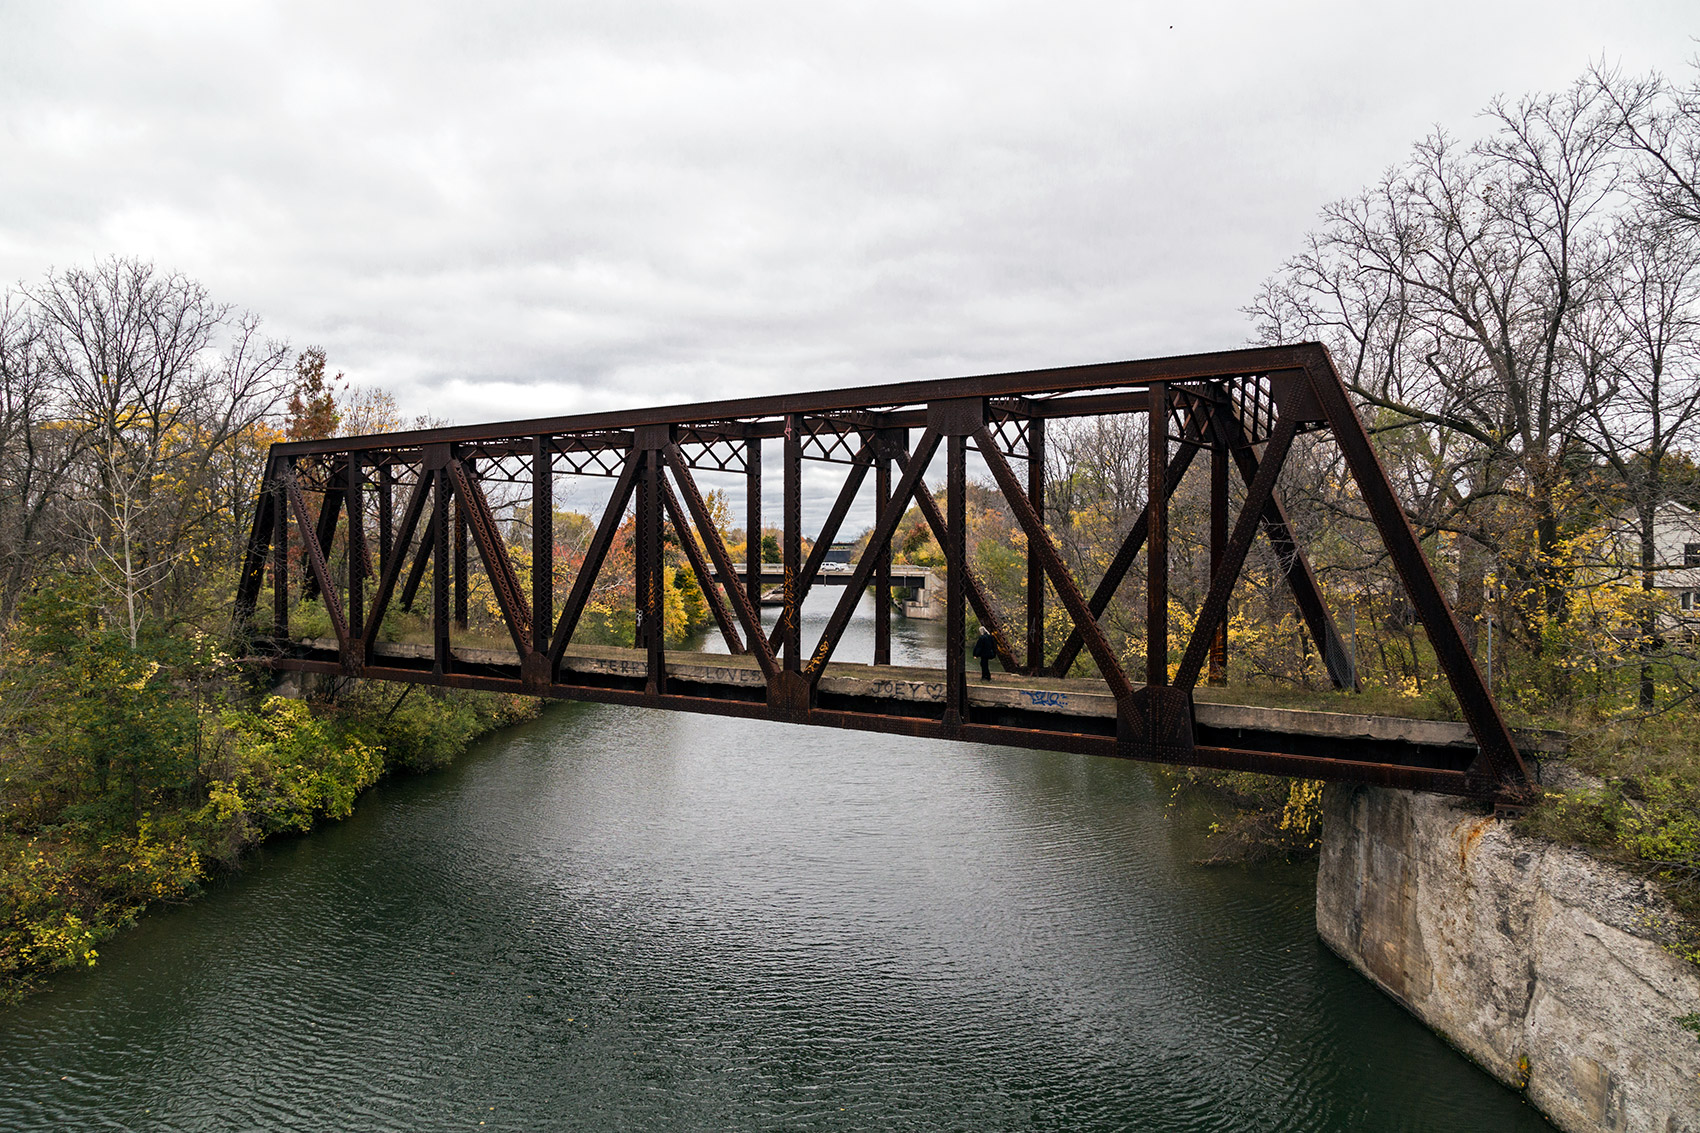 20141028. A beautiful old railway bridge traverses the Erie Cana